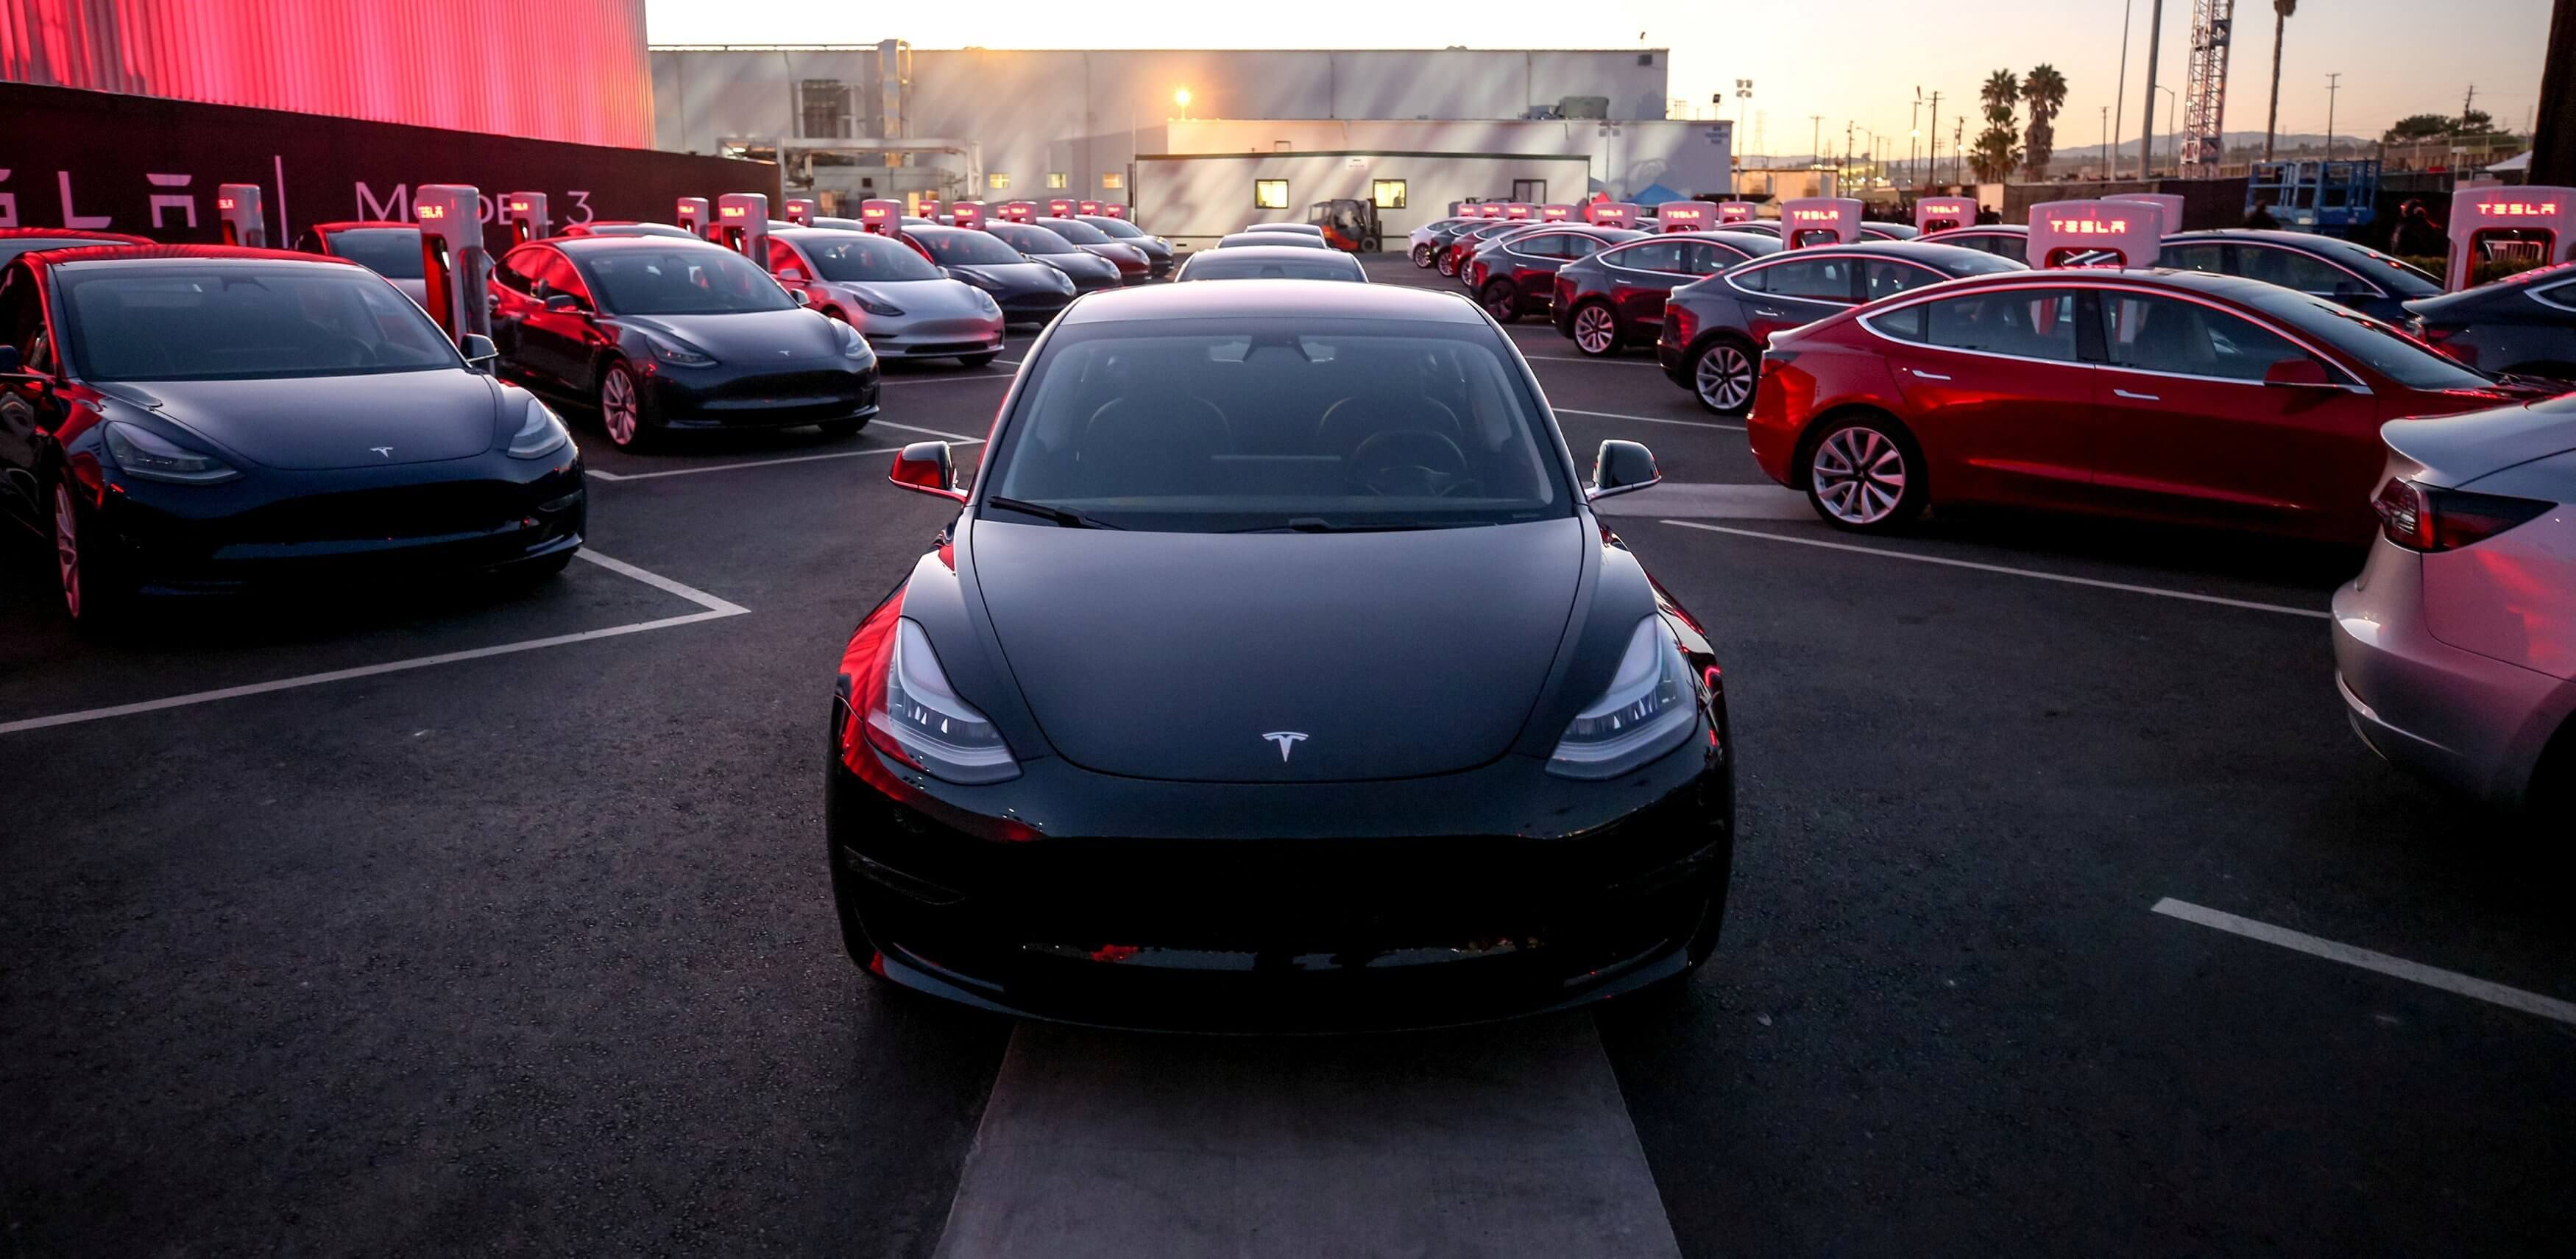 #video | Tesla learned to speak with pedestrians